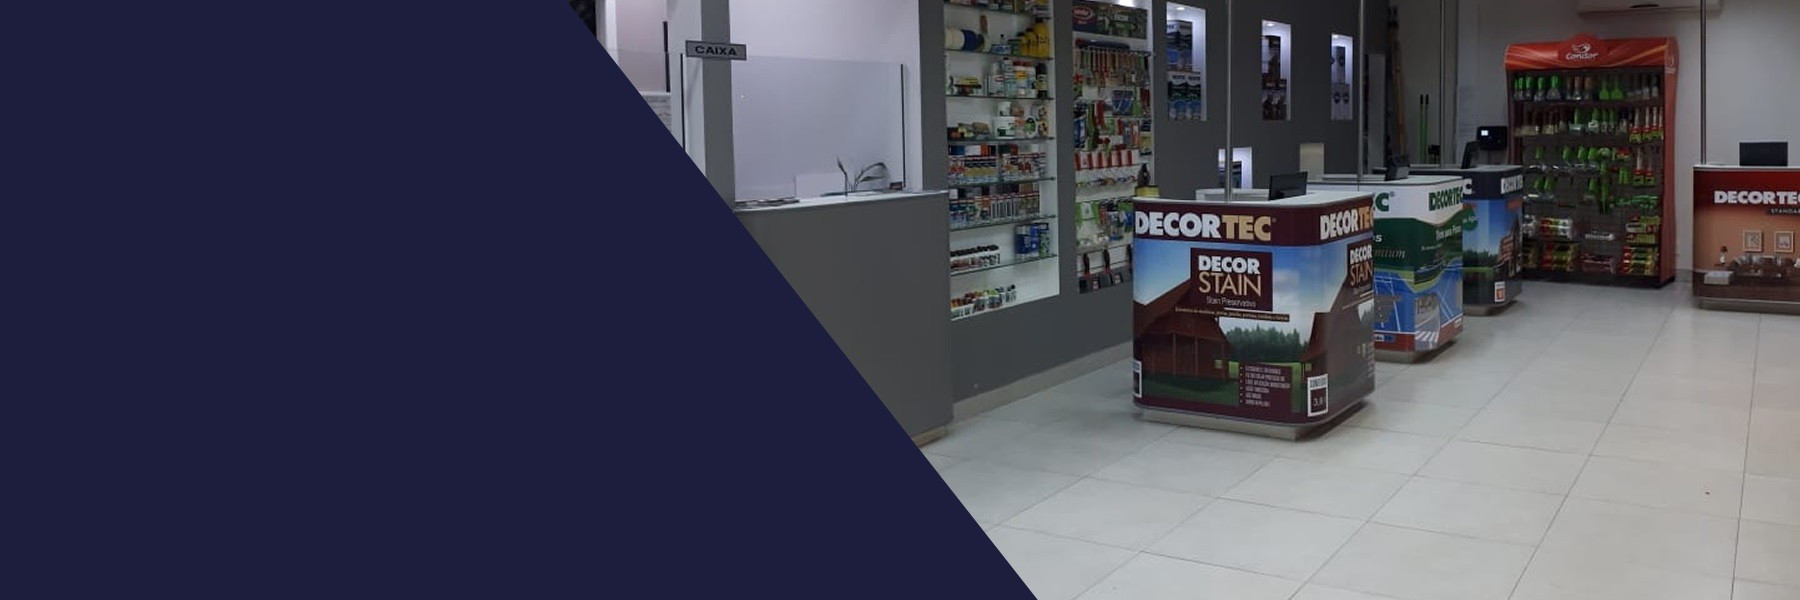 Decortec Tintas